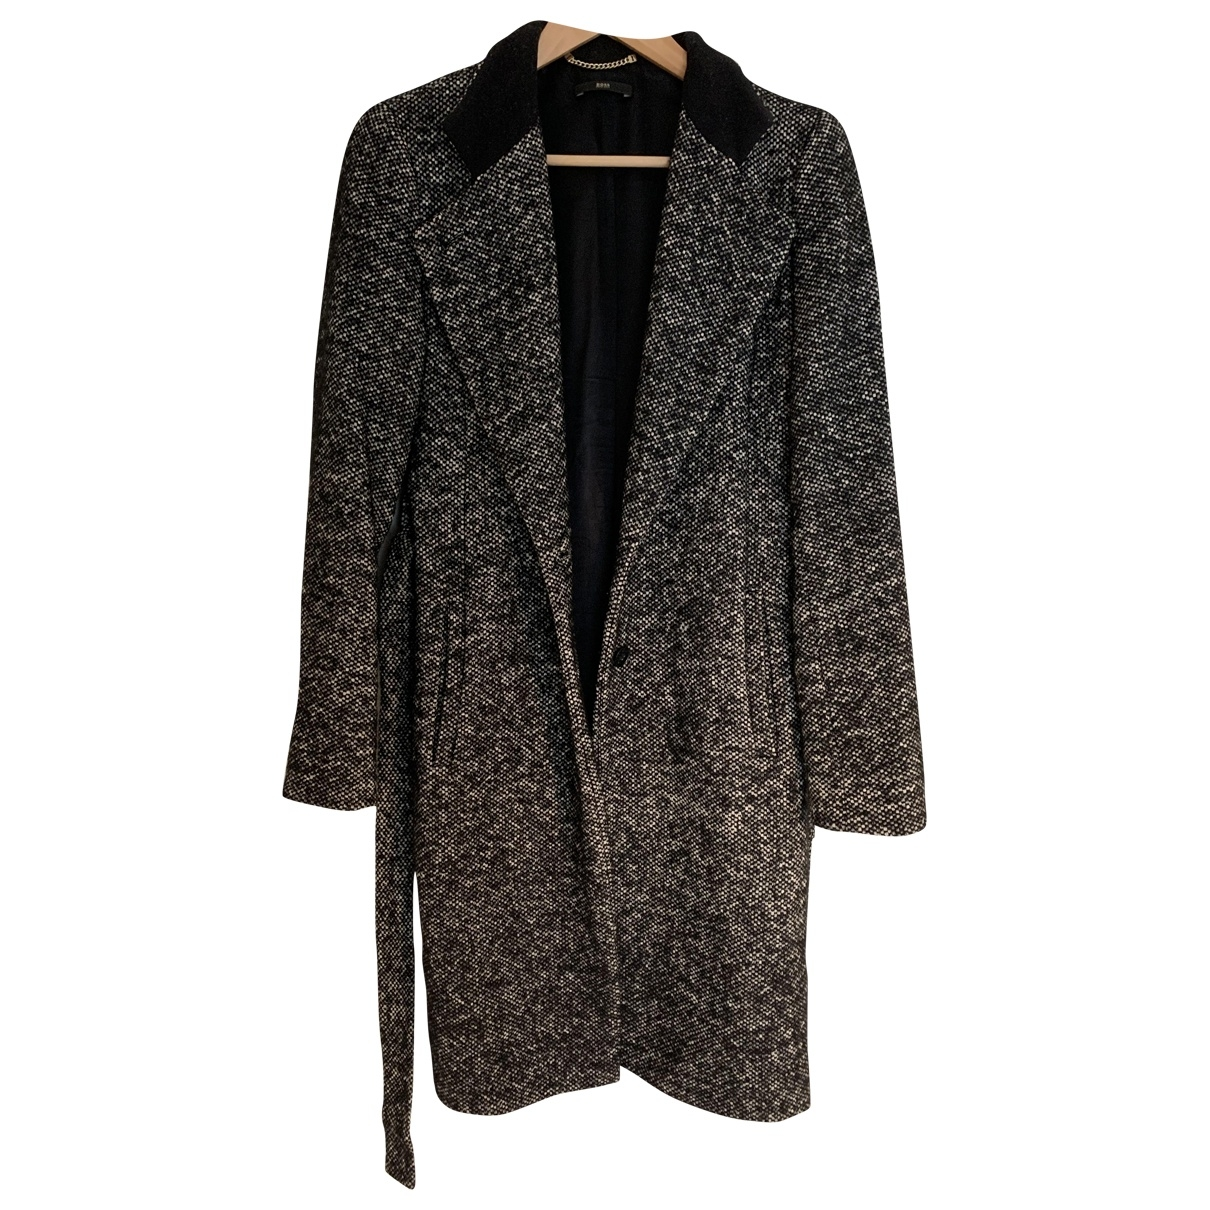 Hugo Boss \N Black Wool coat for Women 44 IT